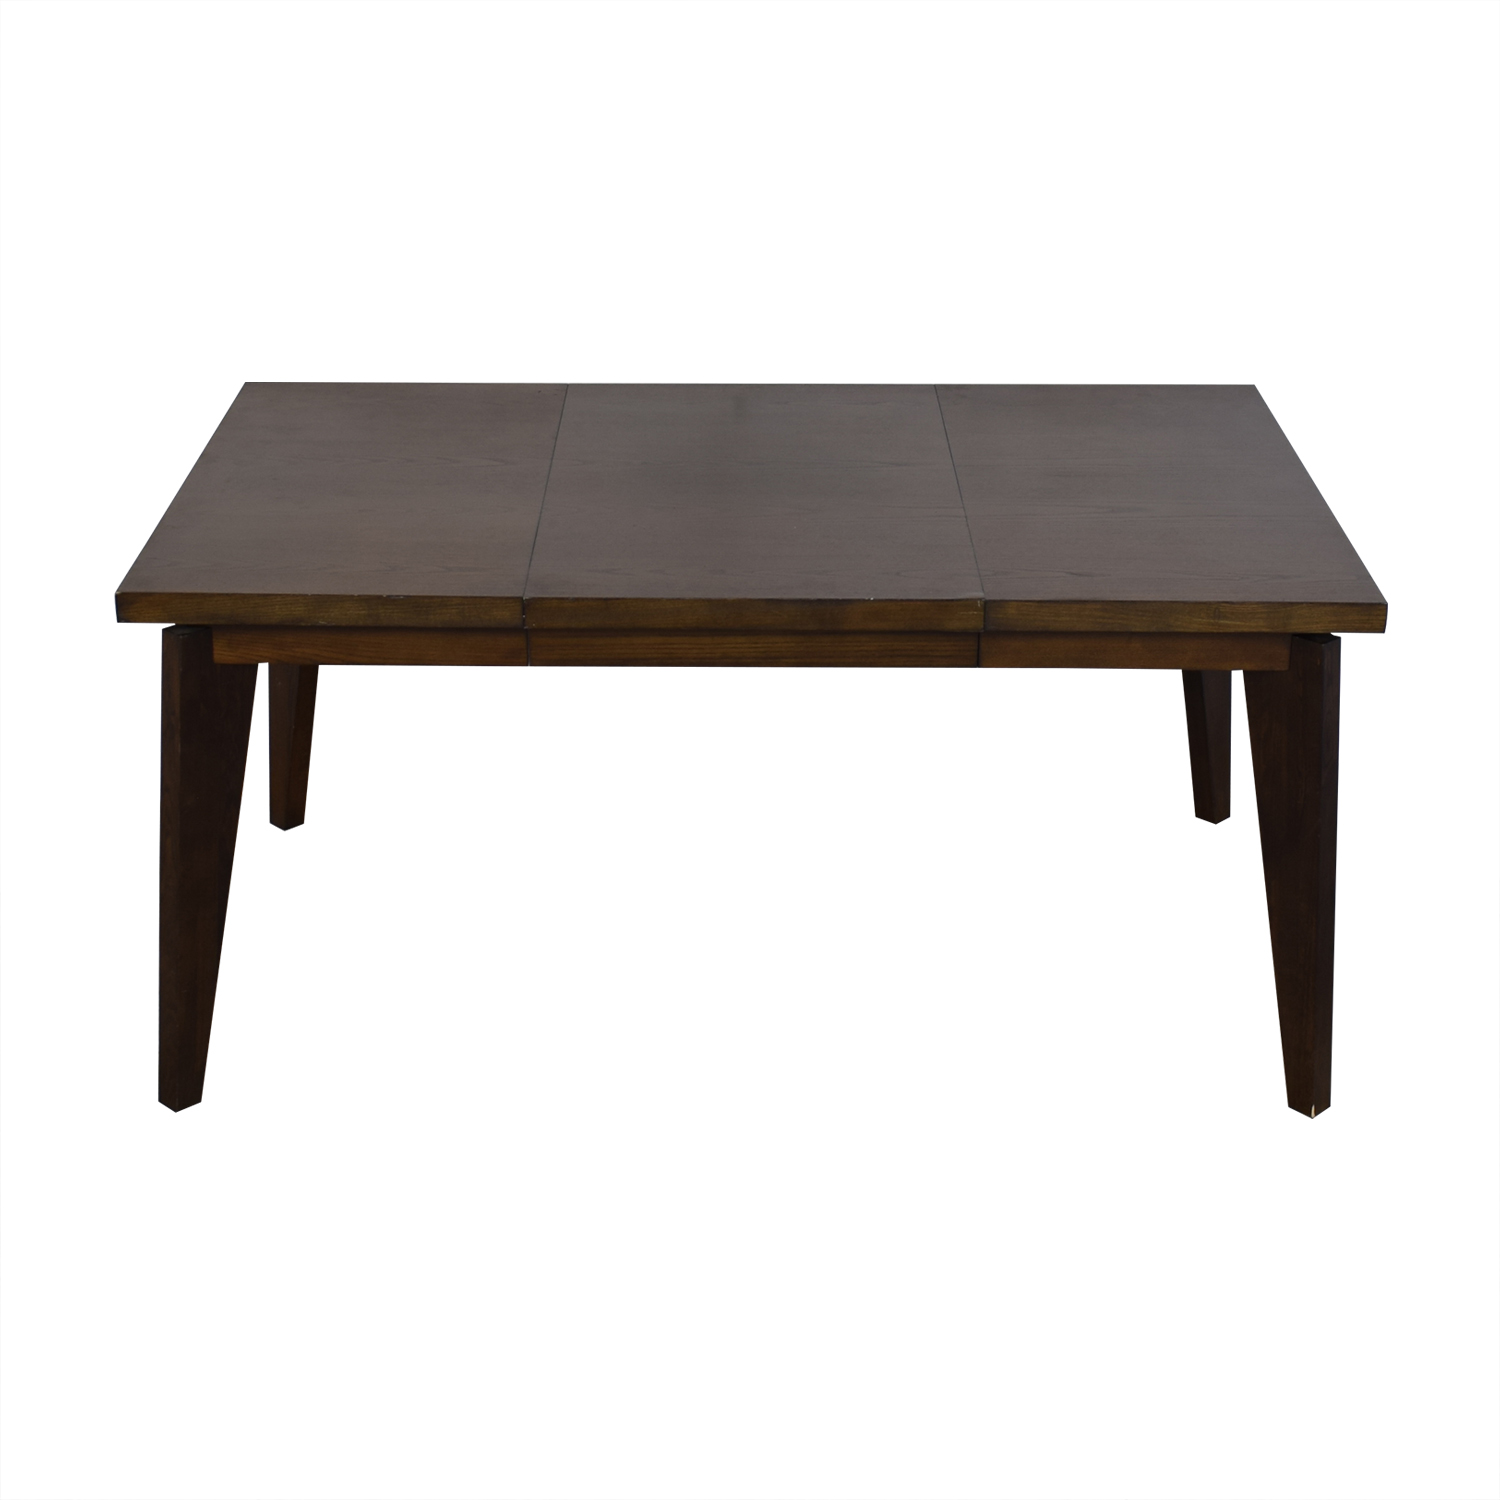 West Elm West Elm Angled-Leg Expandable Table nj